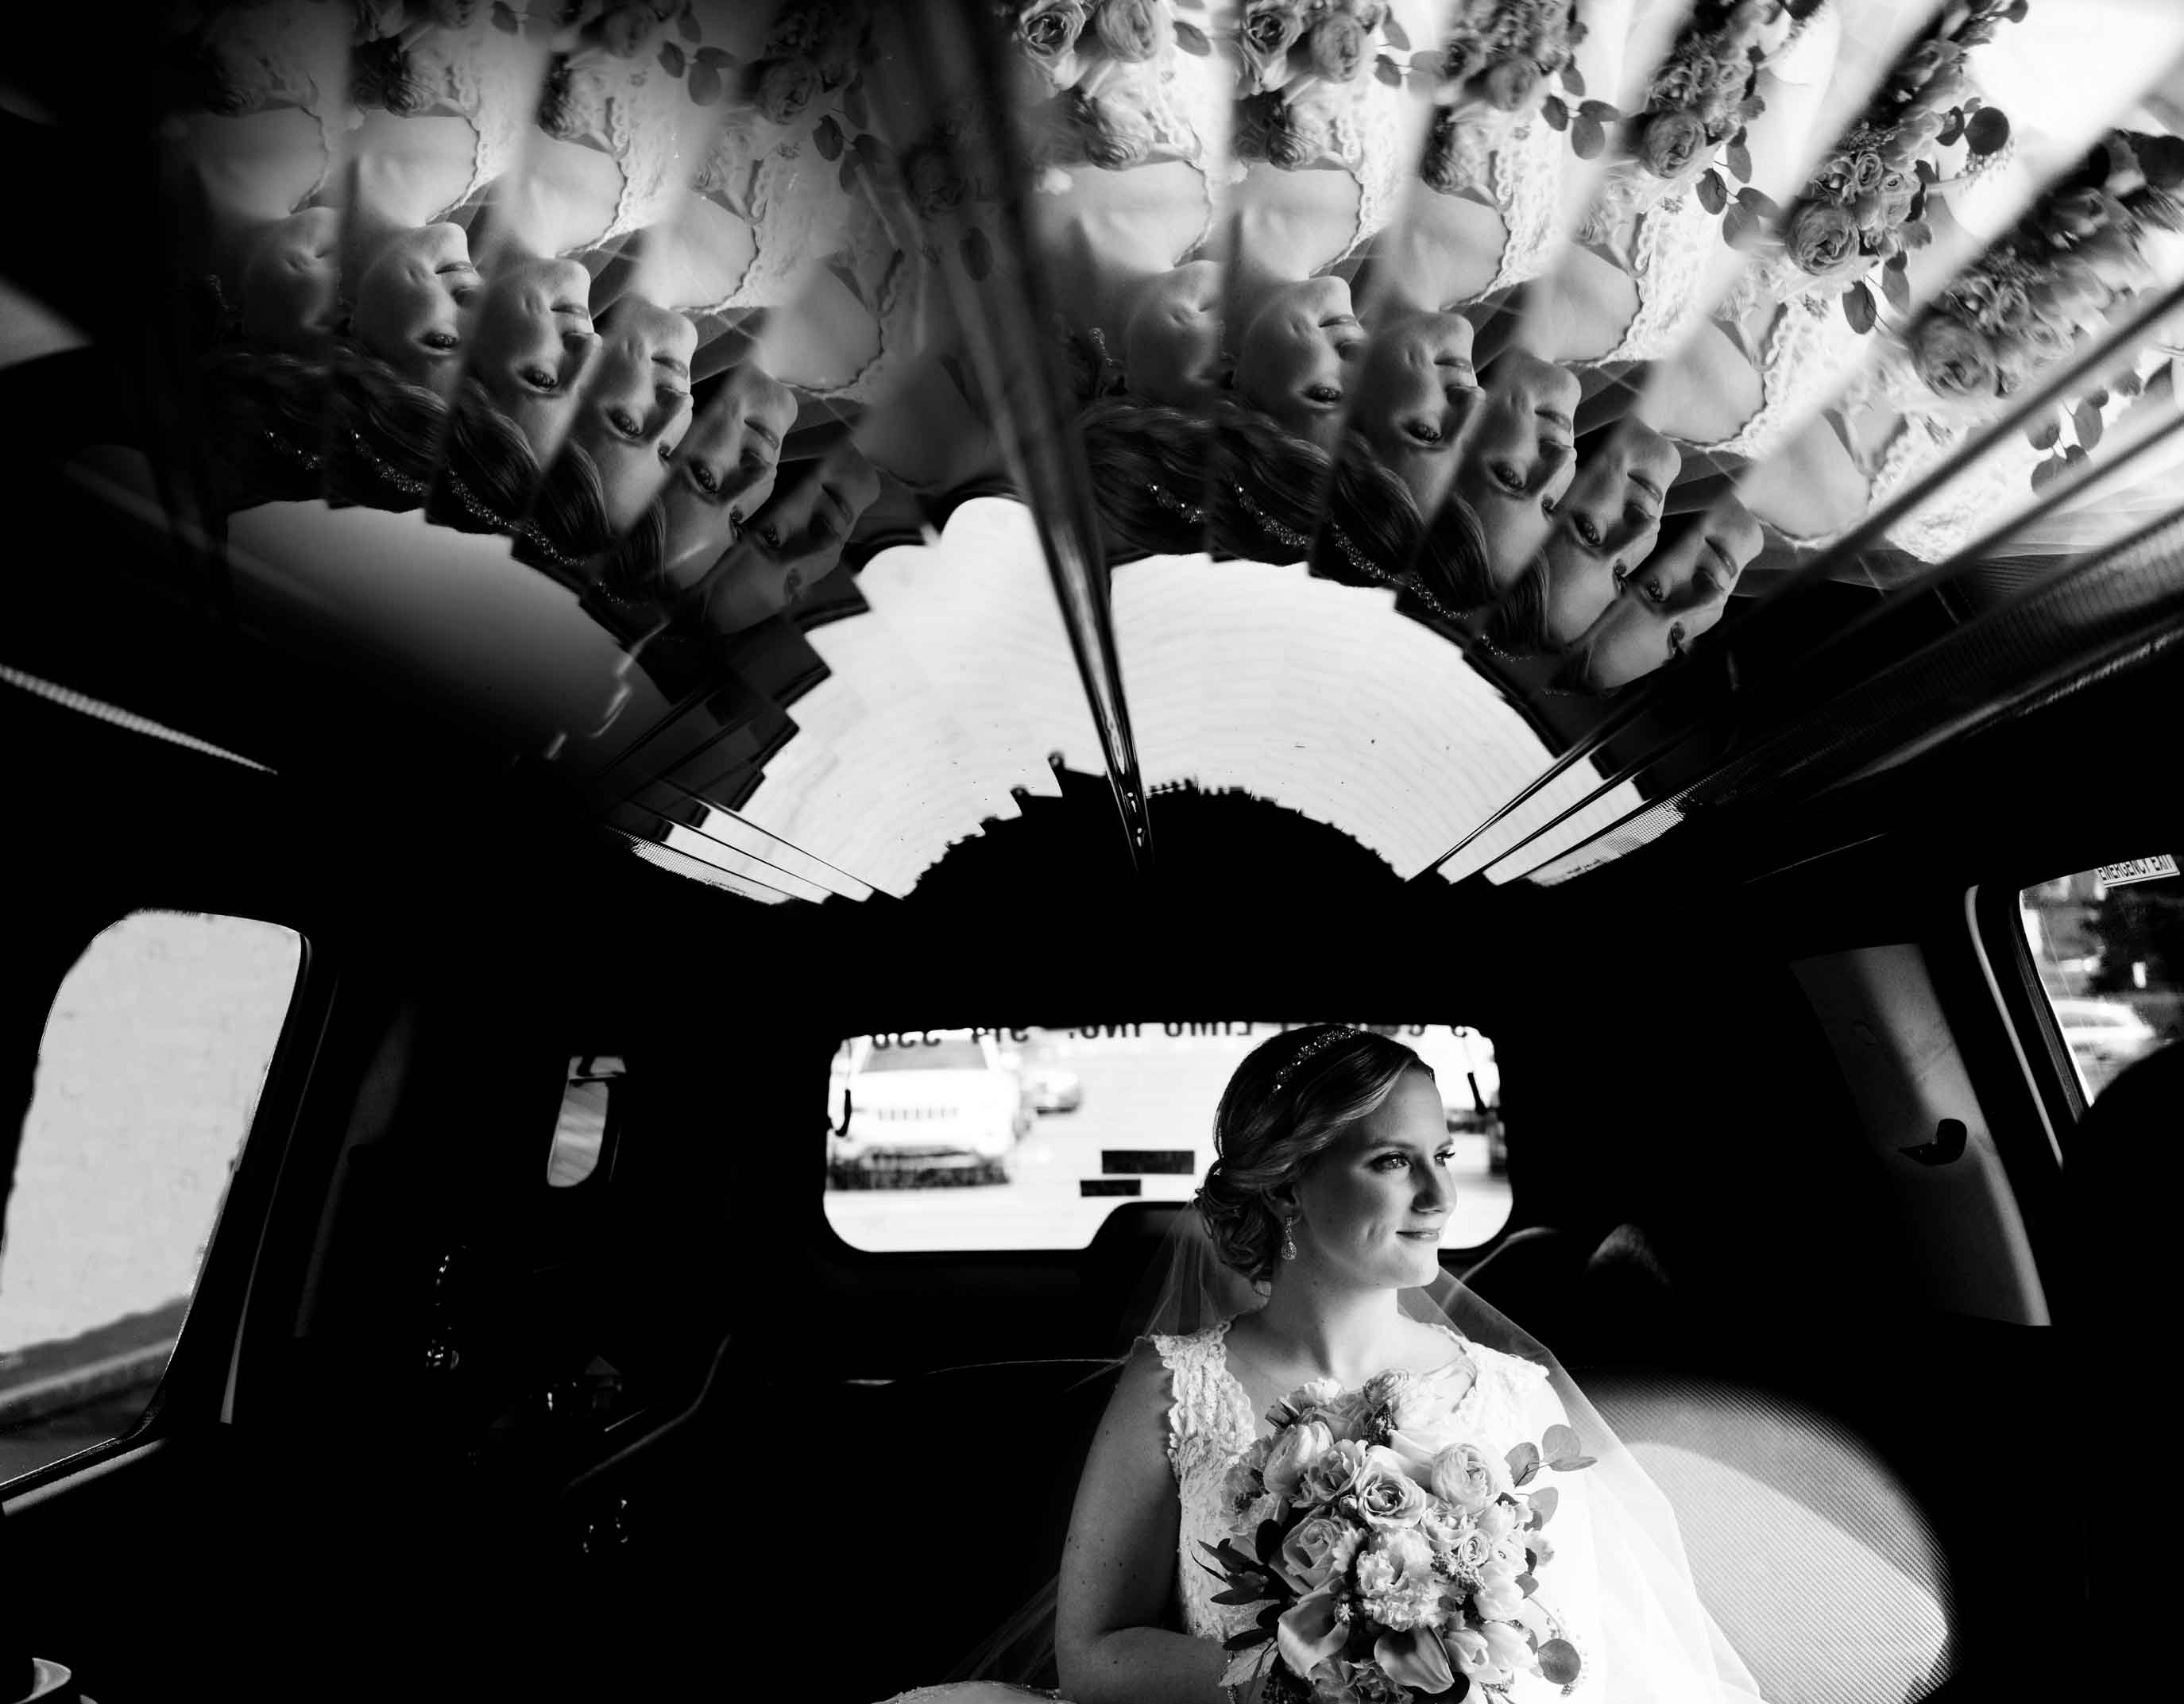 Bride in limo with multiple reflections - photo by MD photo films